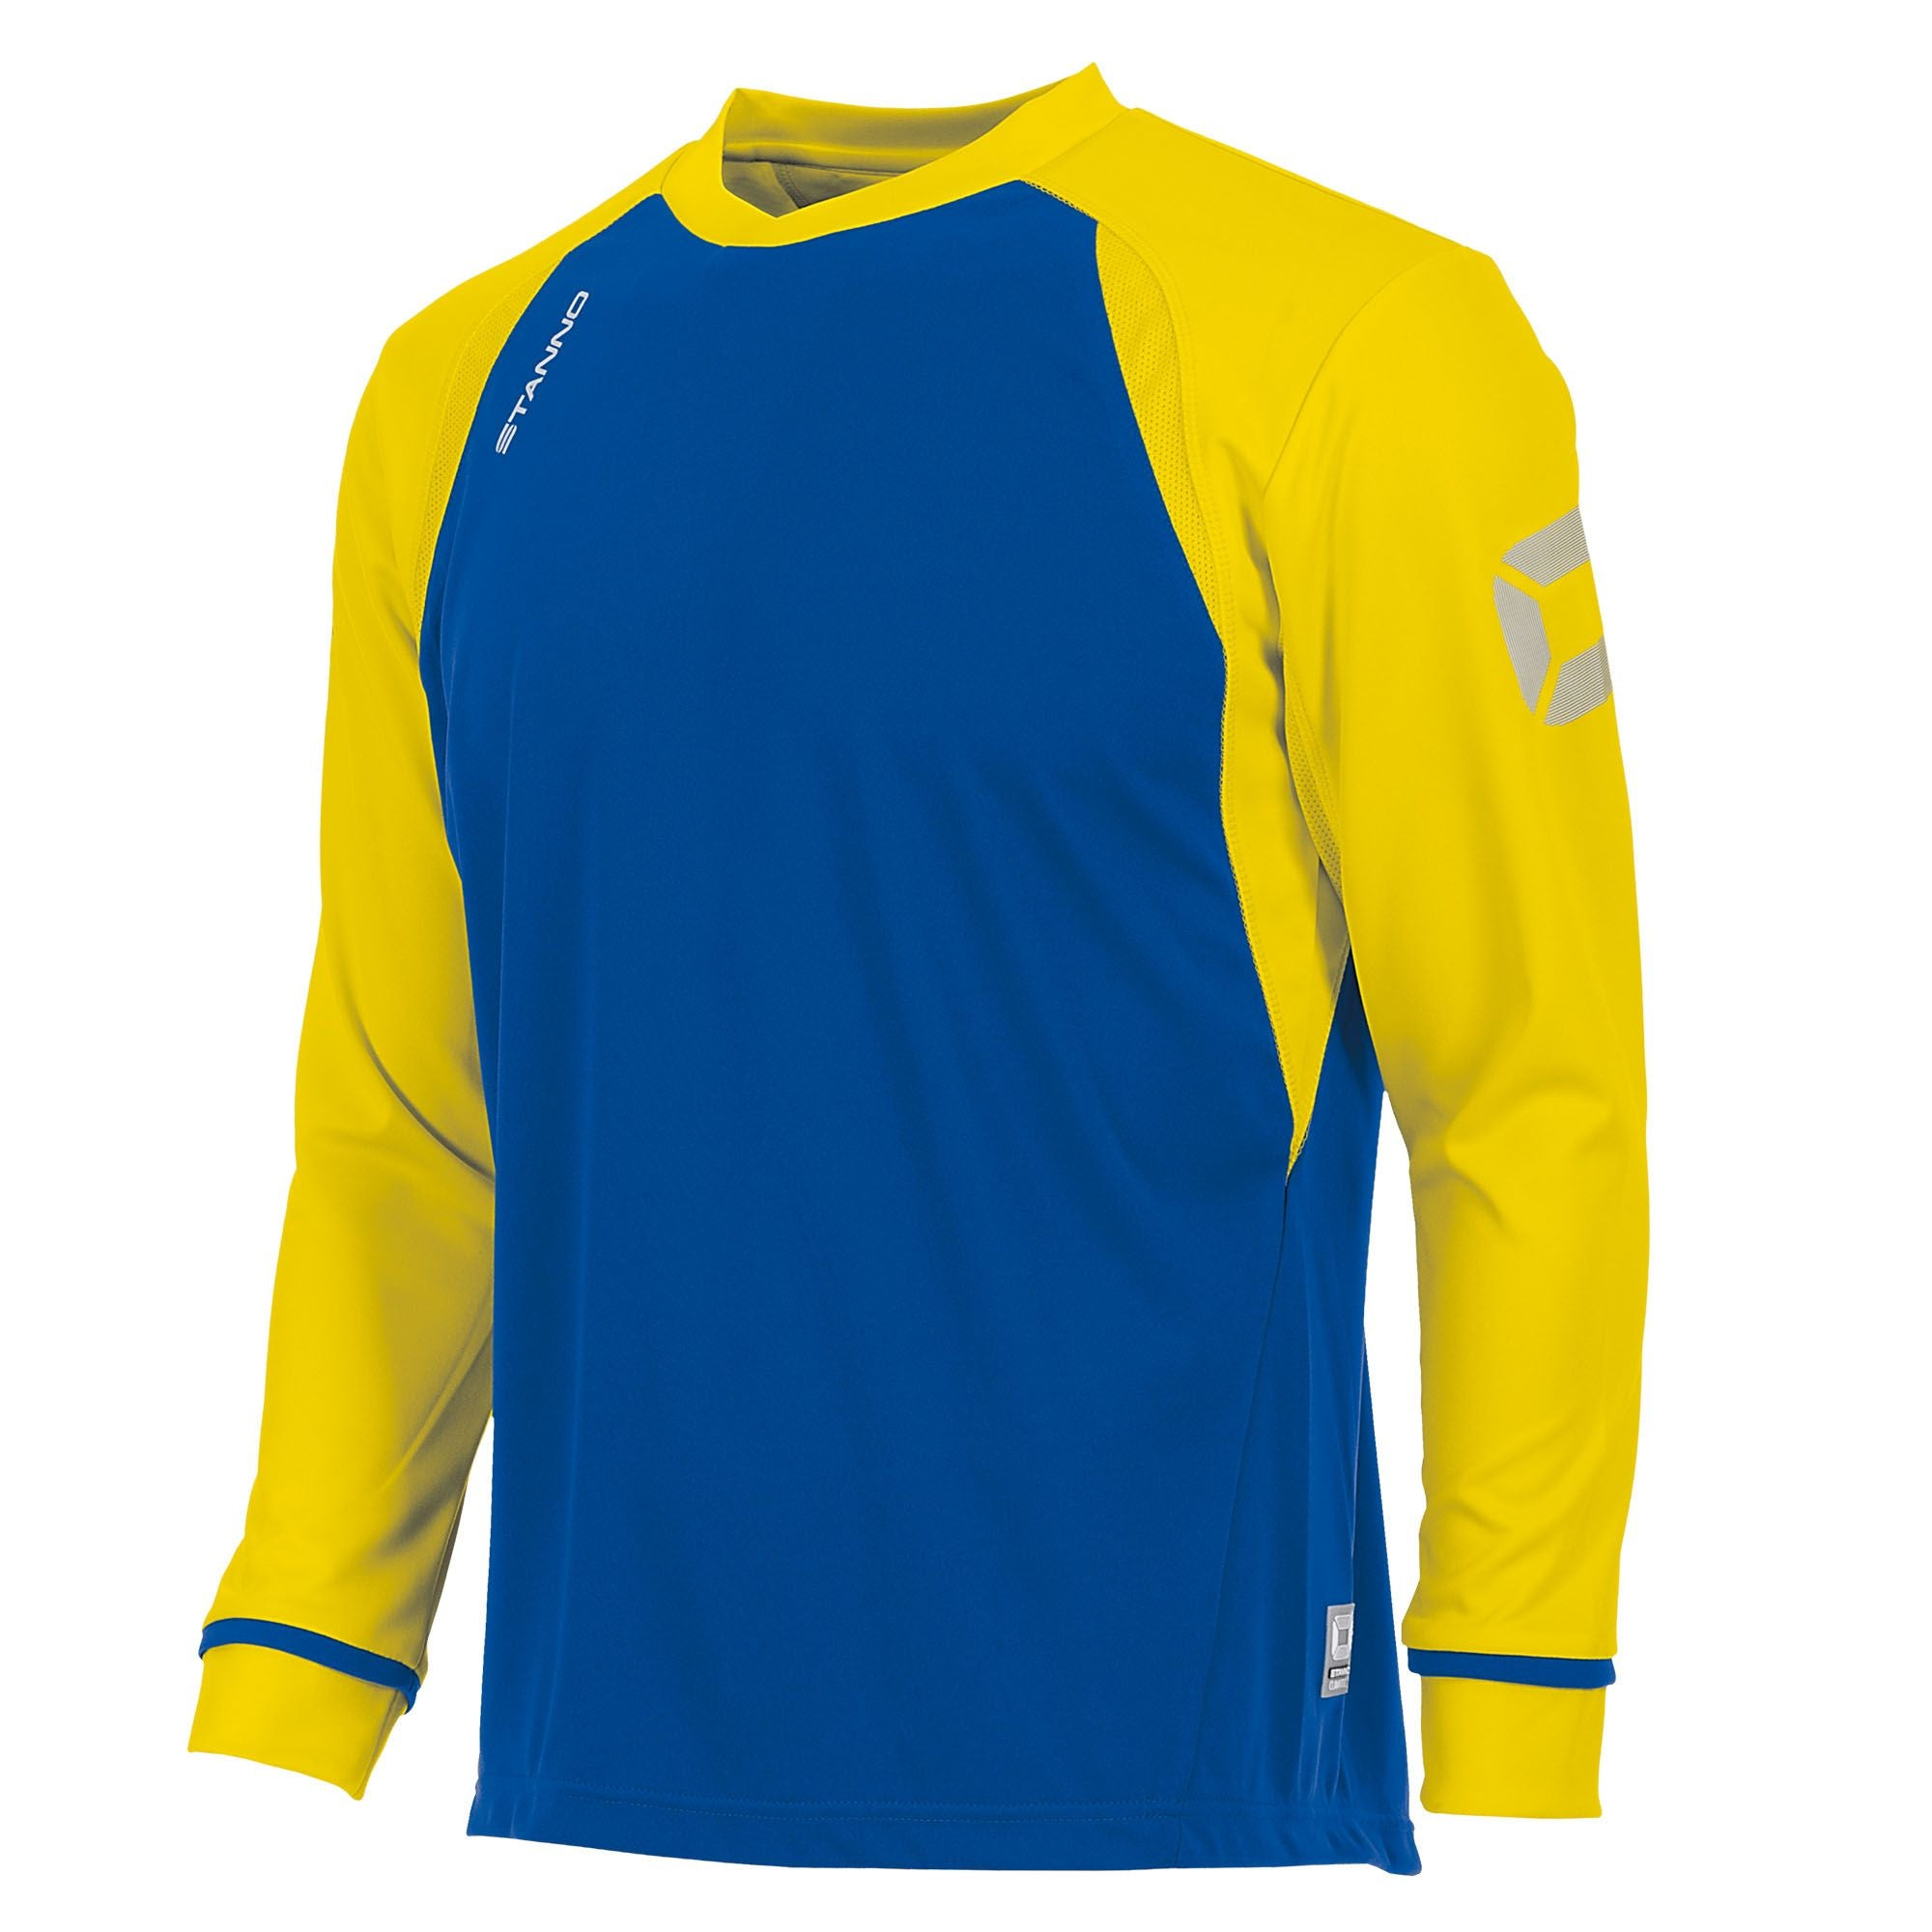 Long sleeved Stanno Liga shirt in royal blue with contrast yellow sleeves and collar, Stadium logo on the sleeve.